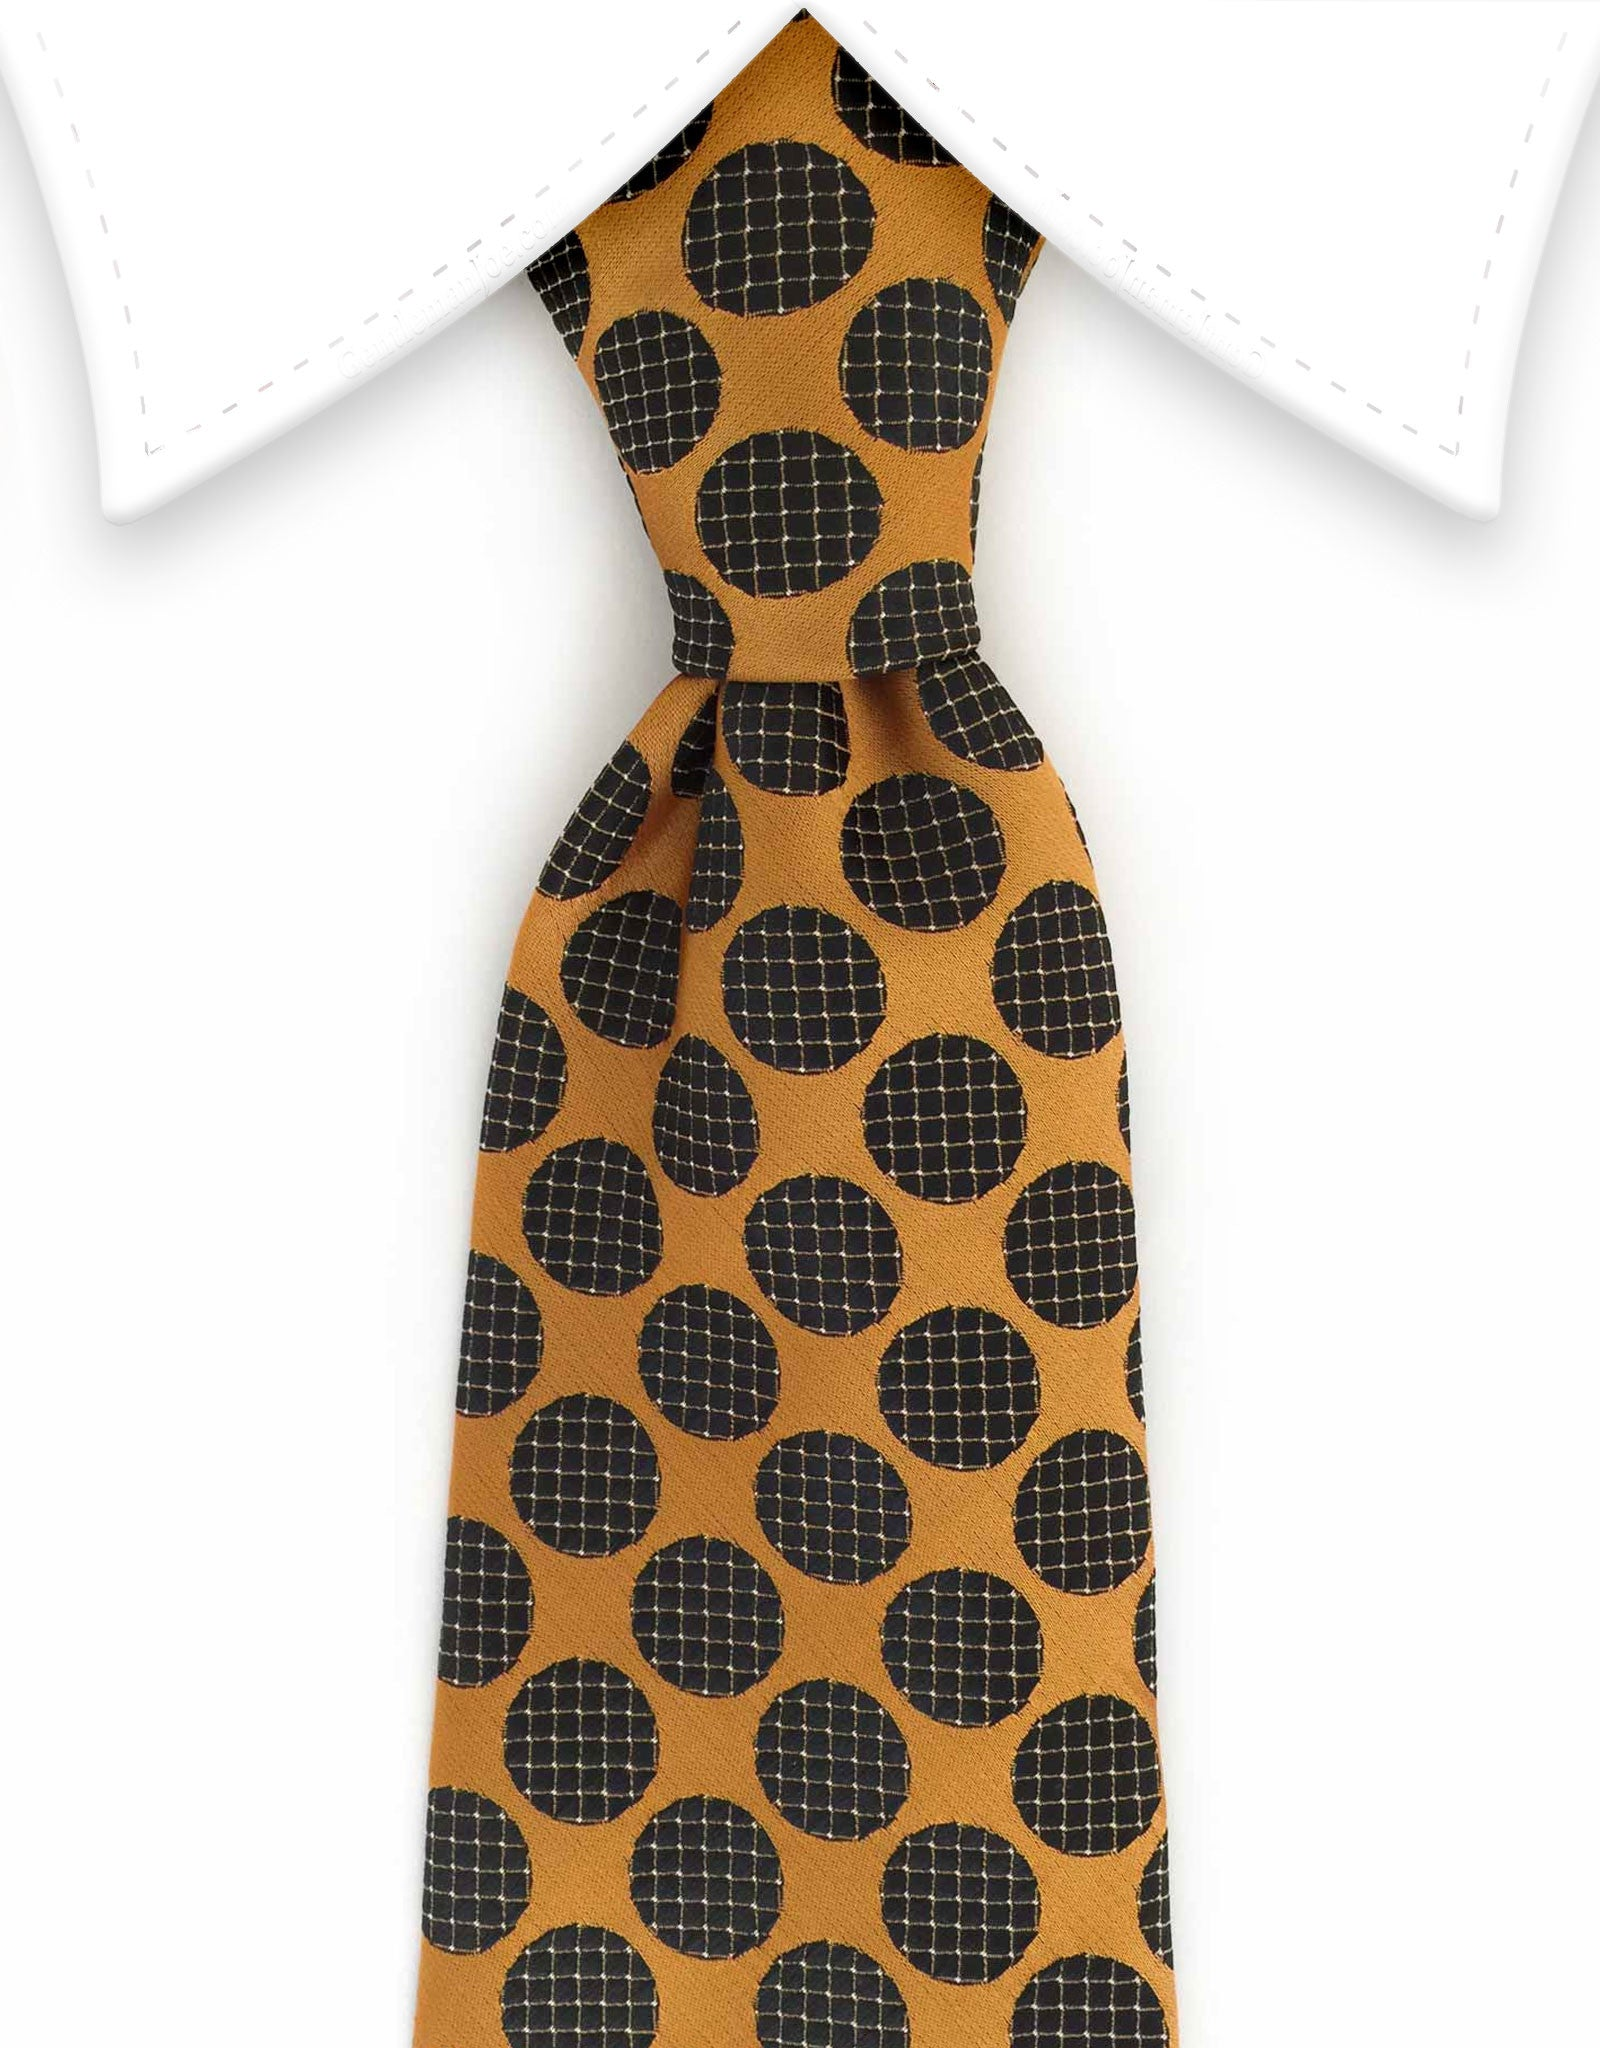 Copper and black polka dot tie